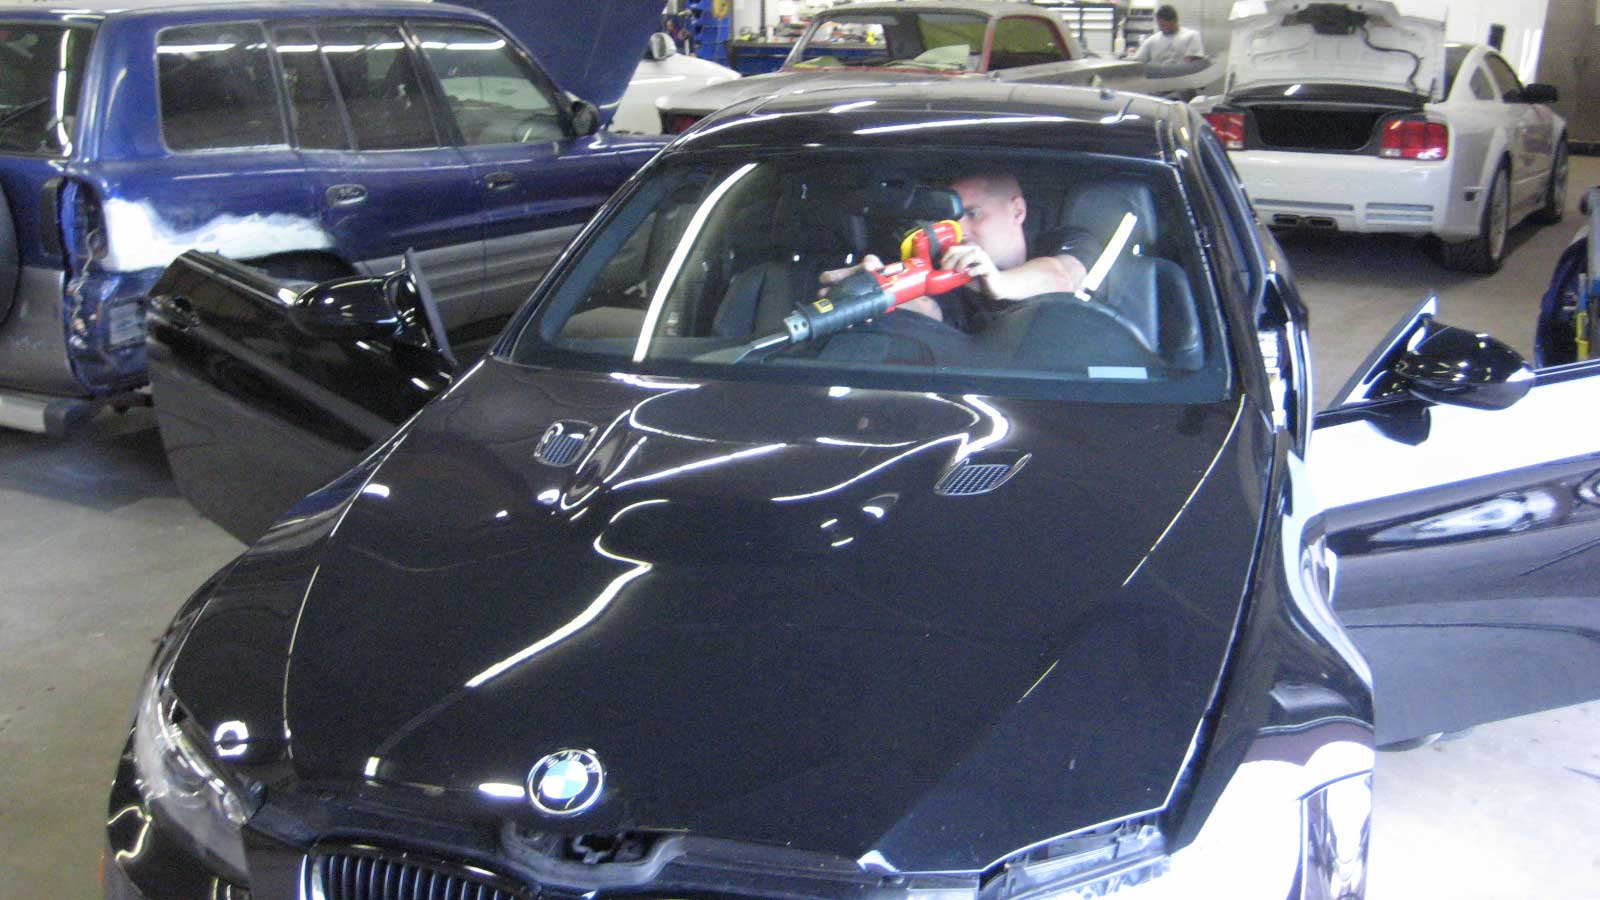 Man installing windshield on a black car